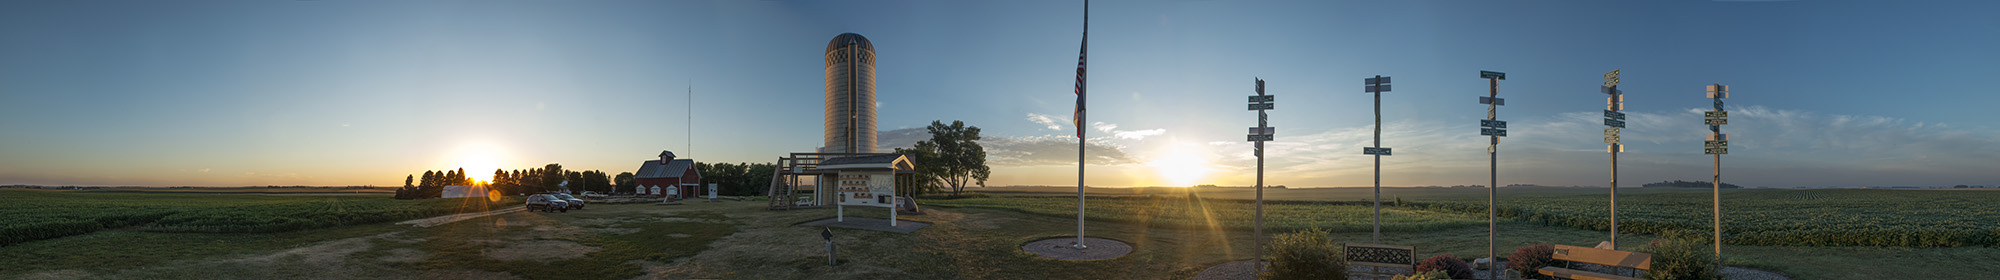 The sunset, and sunrise, at Hawkeye Point, captured over several days.